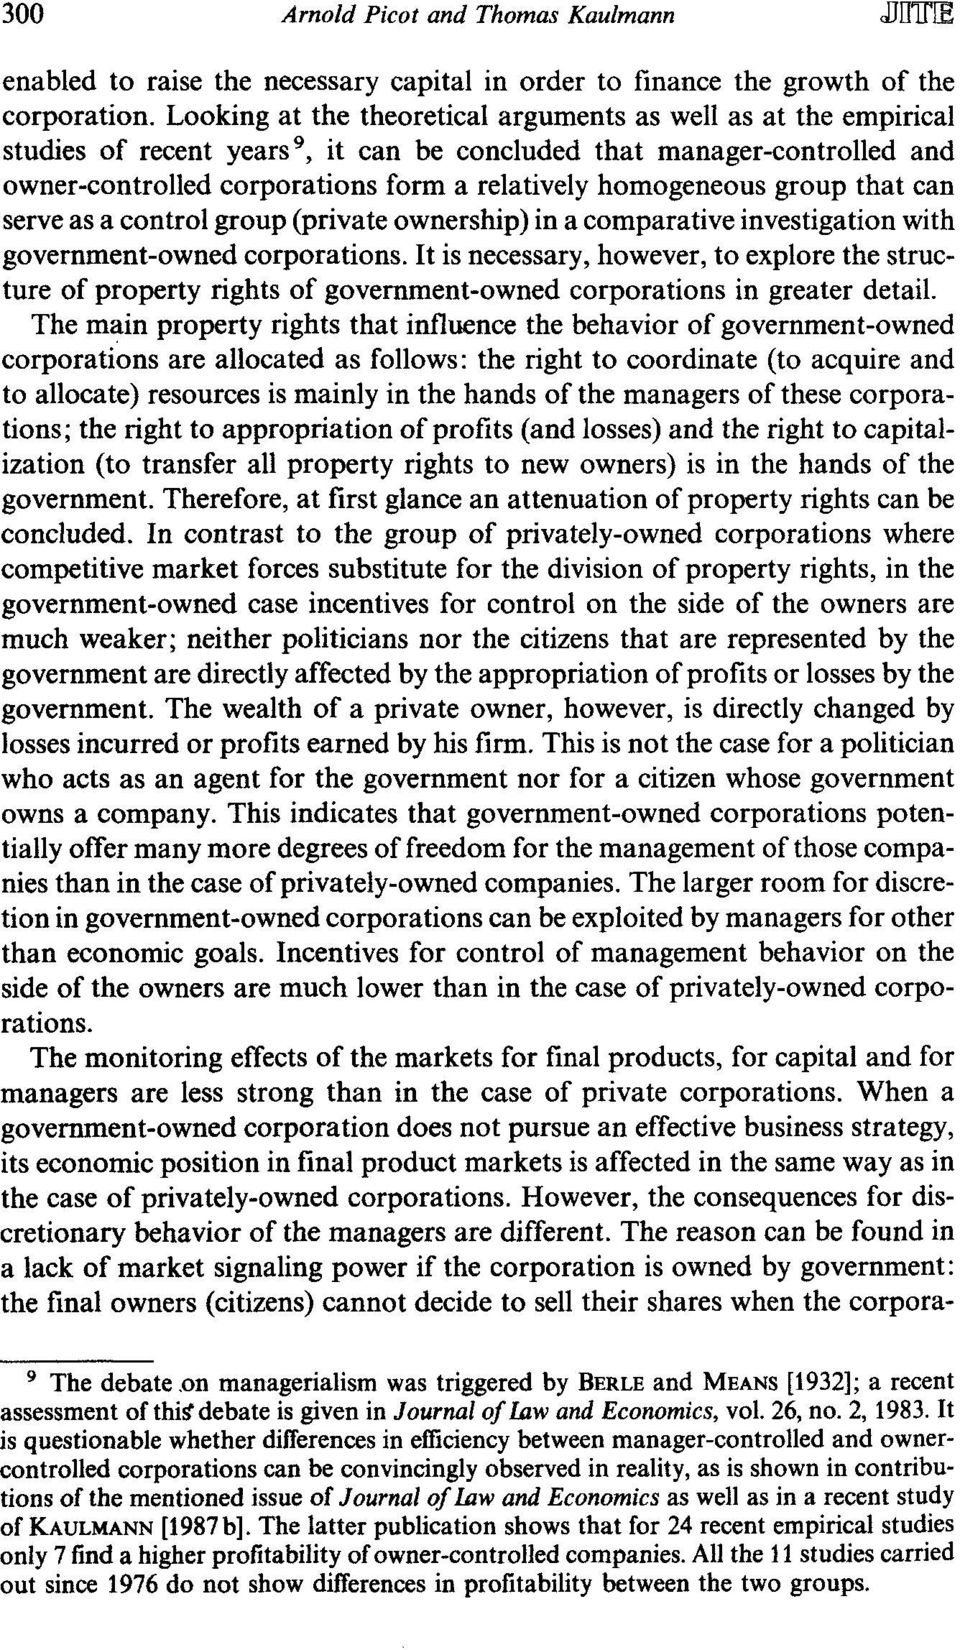 group that can serve as a control group (private ownership) in a comparative investigation with government-owned corporations.